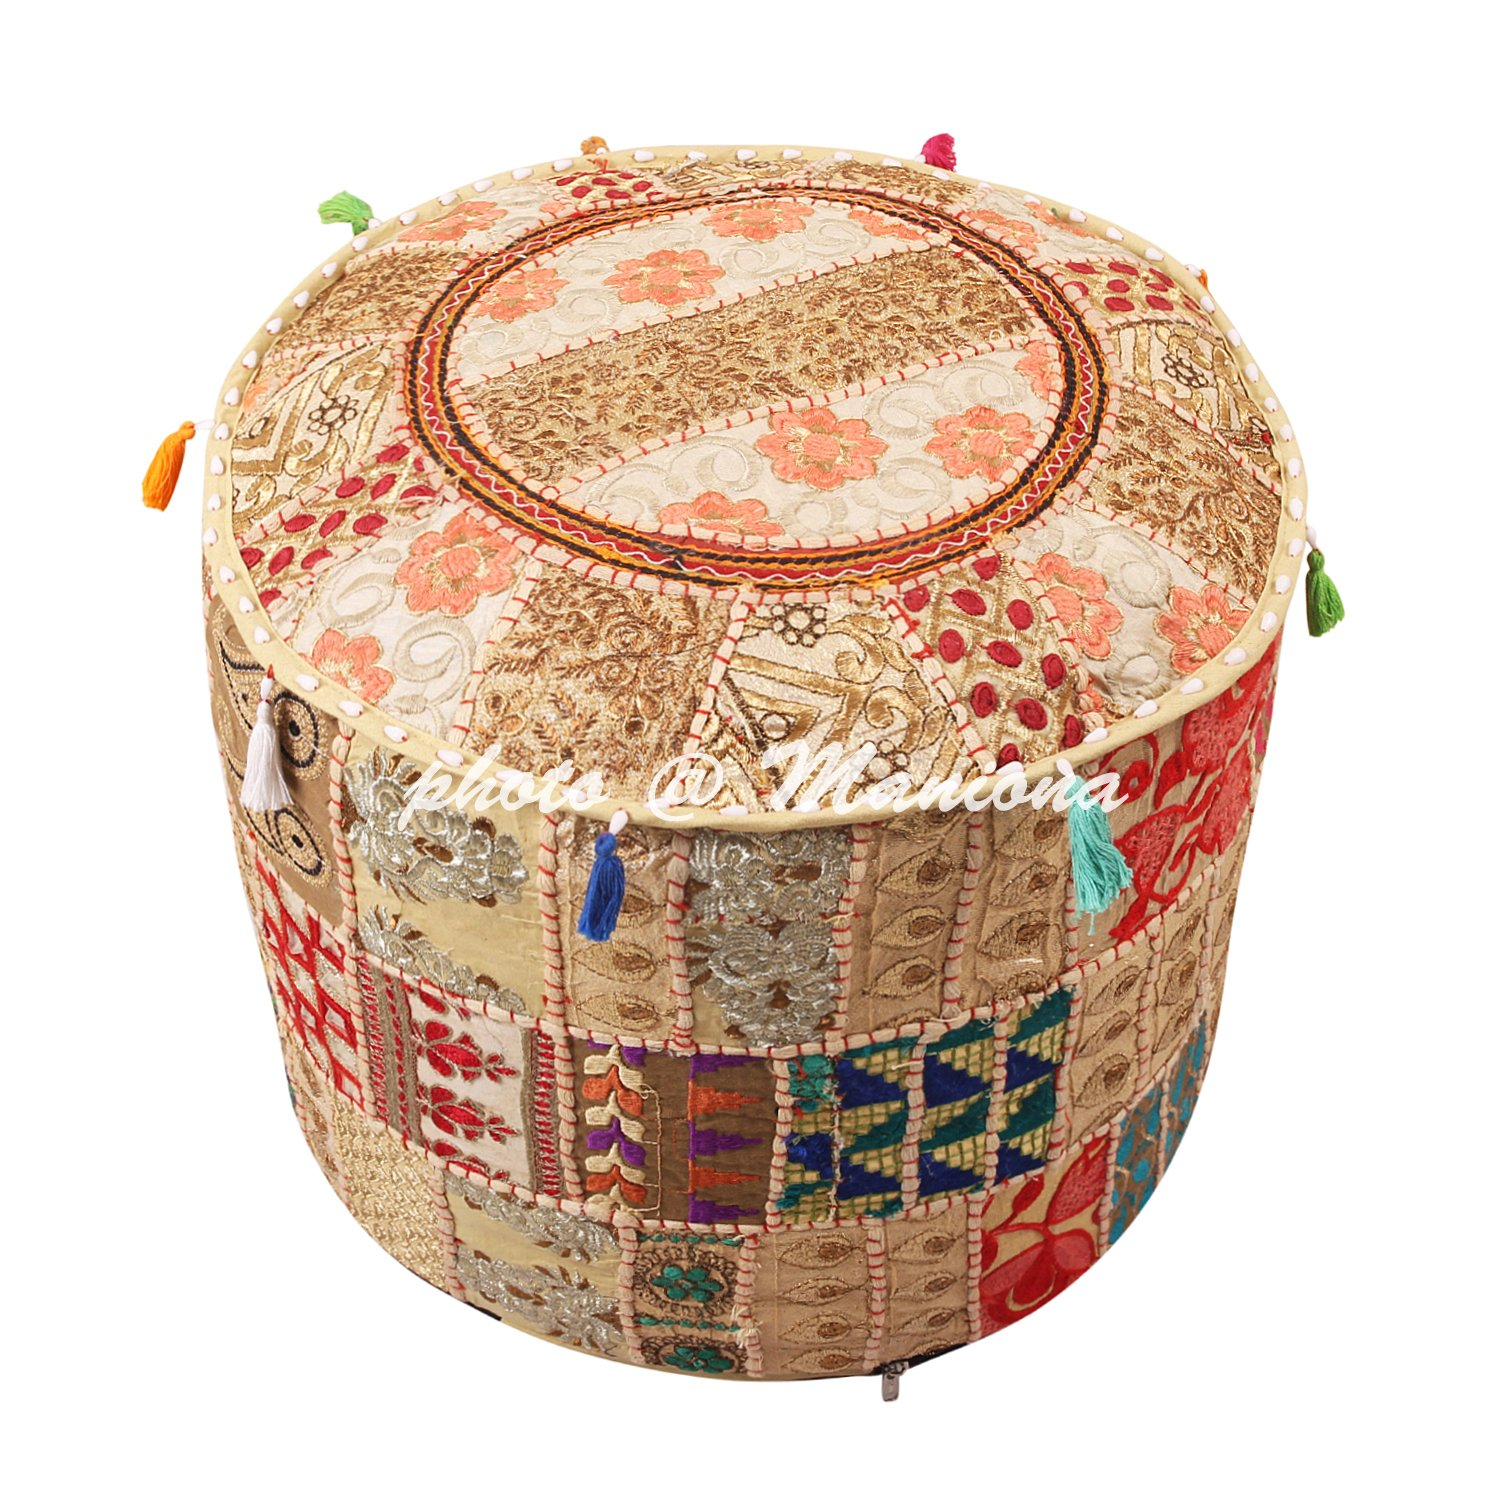 Maniona 18'' Round Ethnic Cotton Patchwork Embroidered Ottoman Stool Pouf Cover Beige Floral Bean Bag Pouf Foot Rest Indian Decor